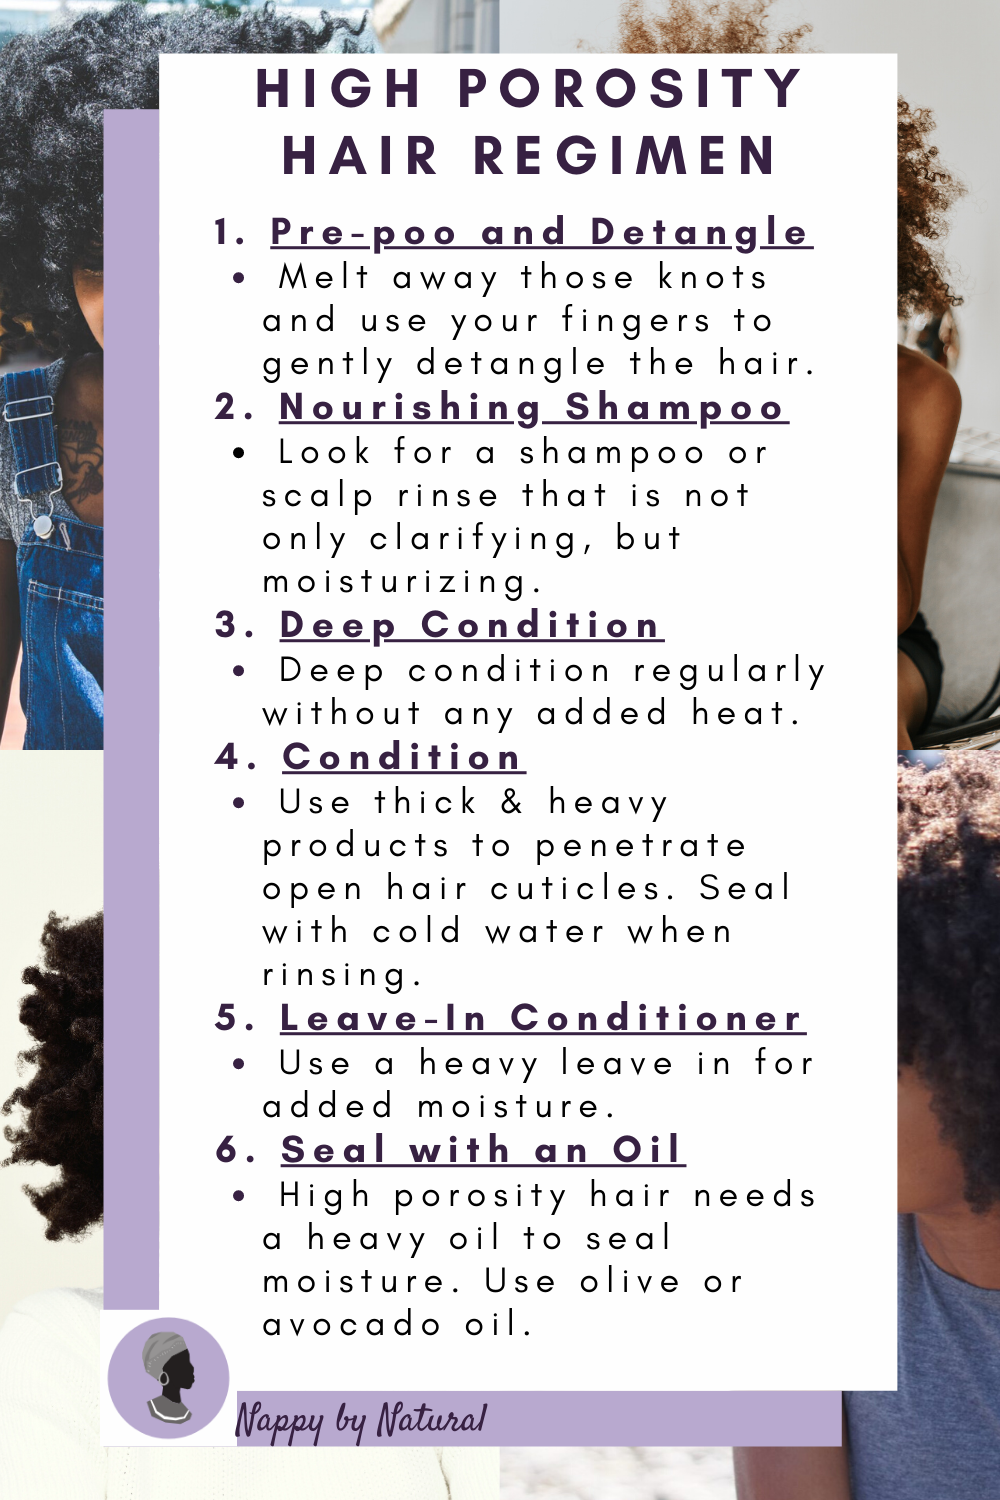 High Porosity Hair Regimen!